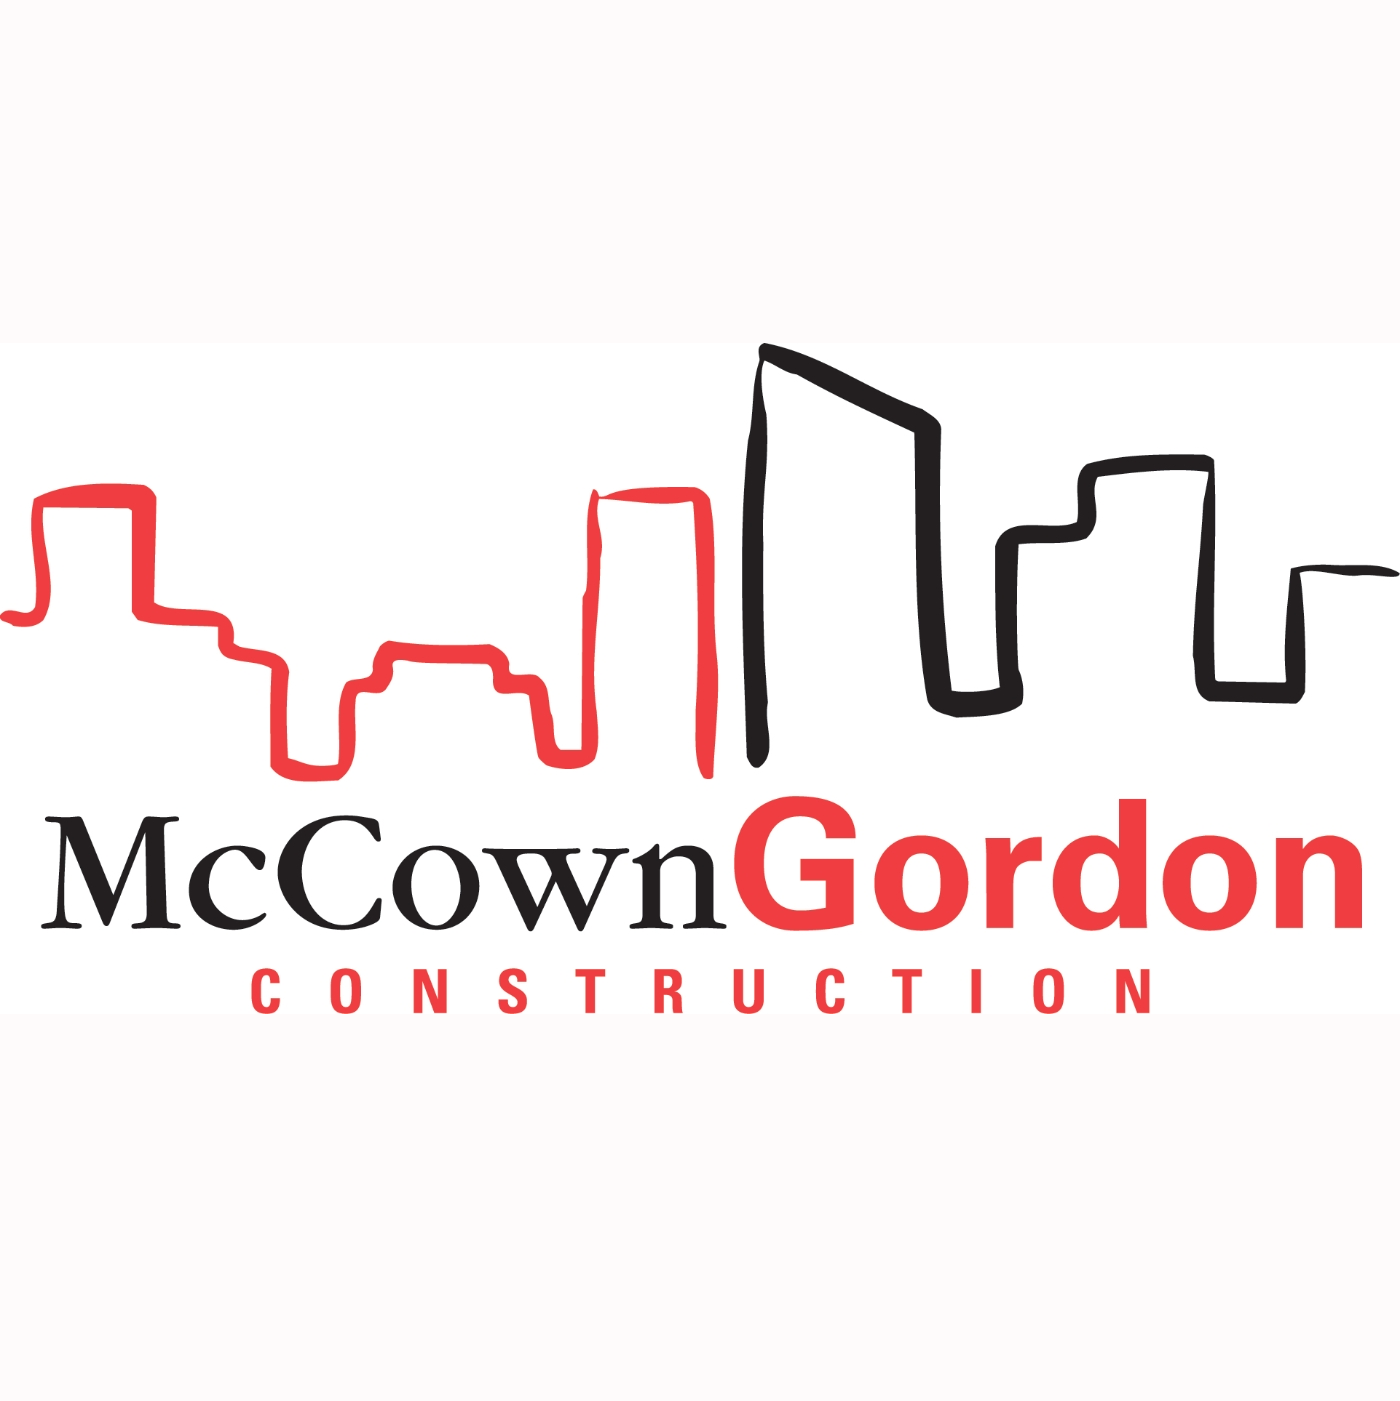 McCownGordon Construction Hires Lang copy